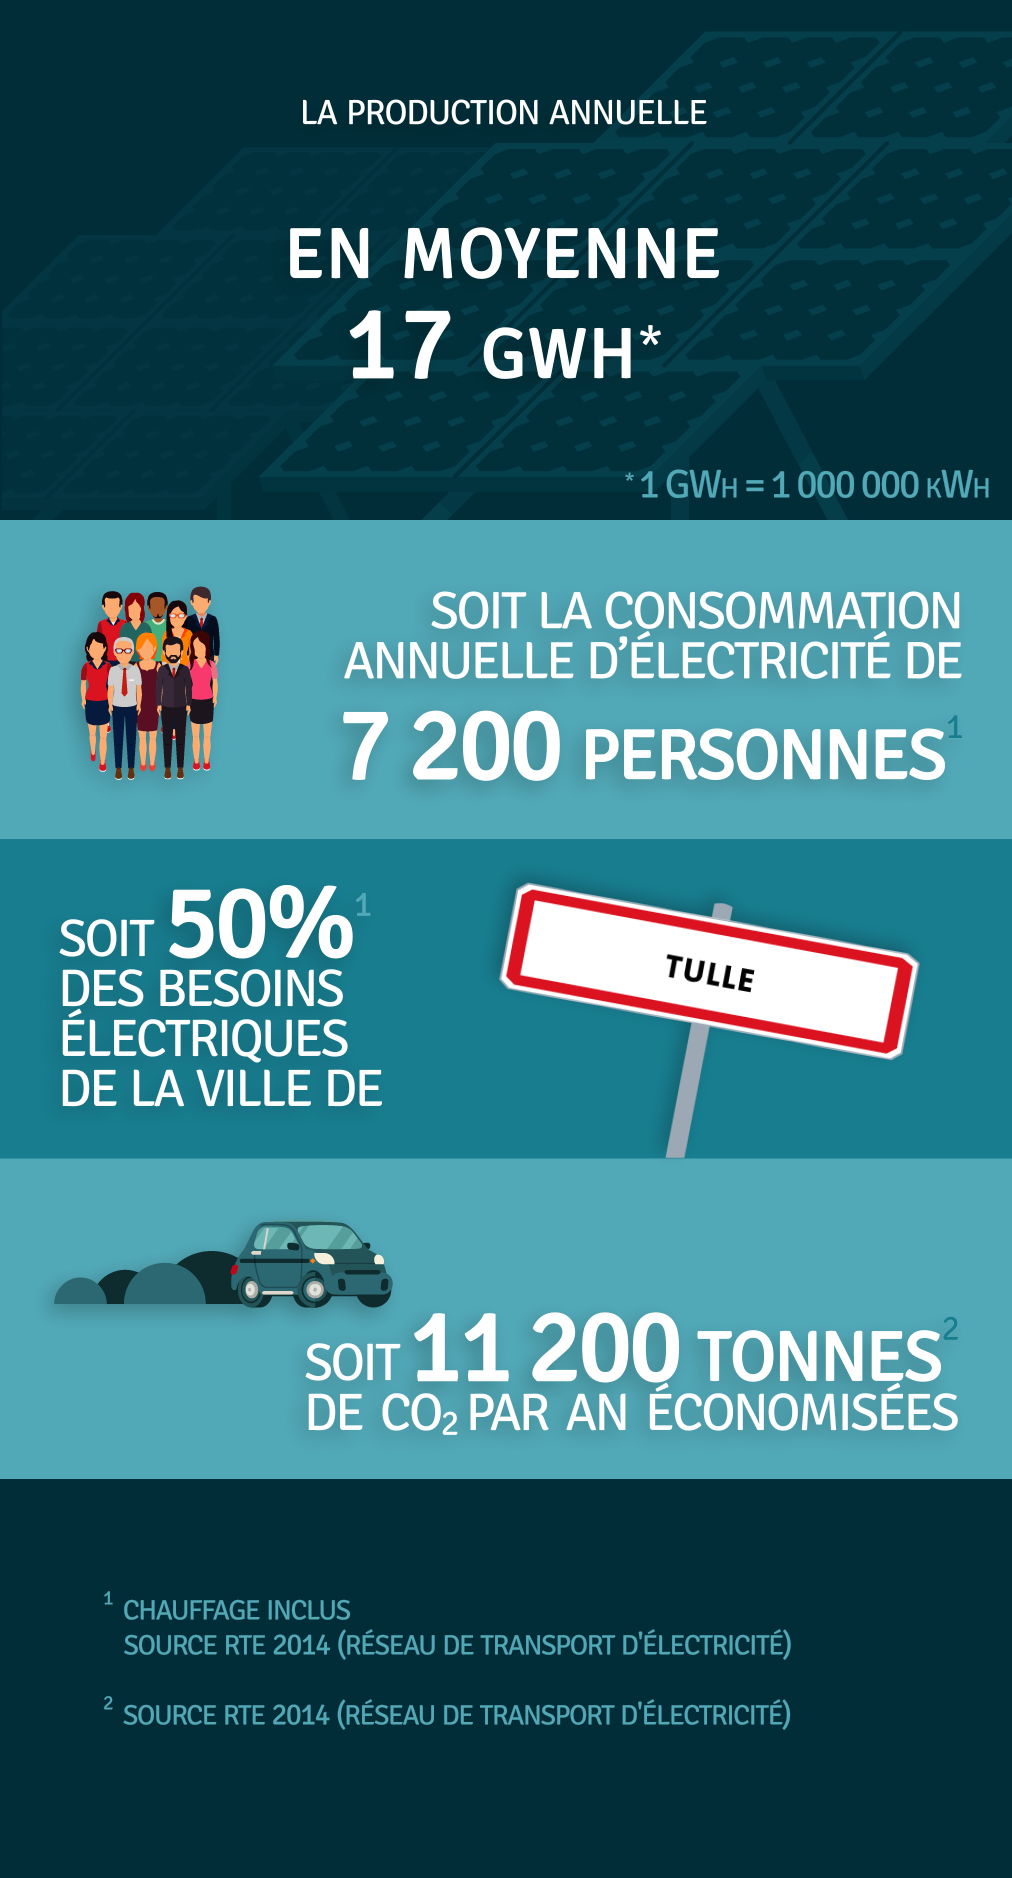 Production annuelle 17 000 000 kWh